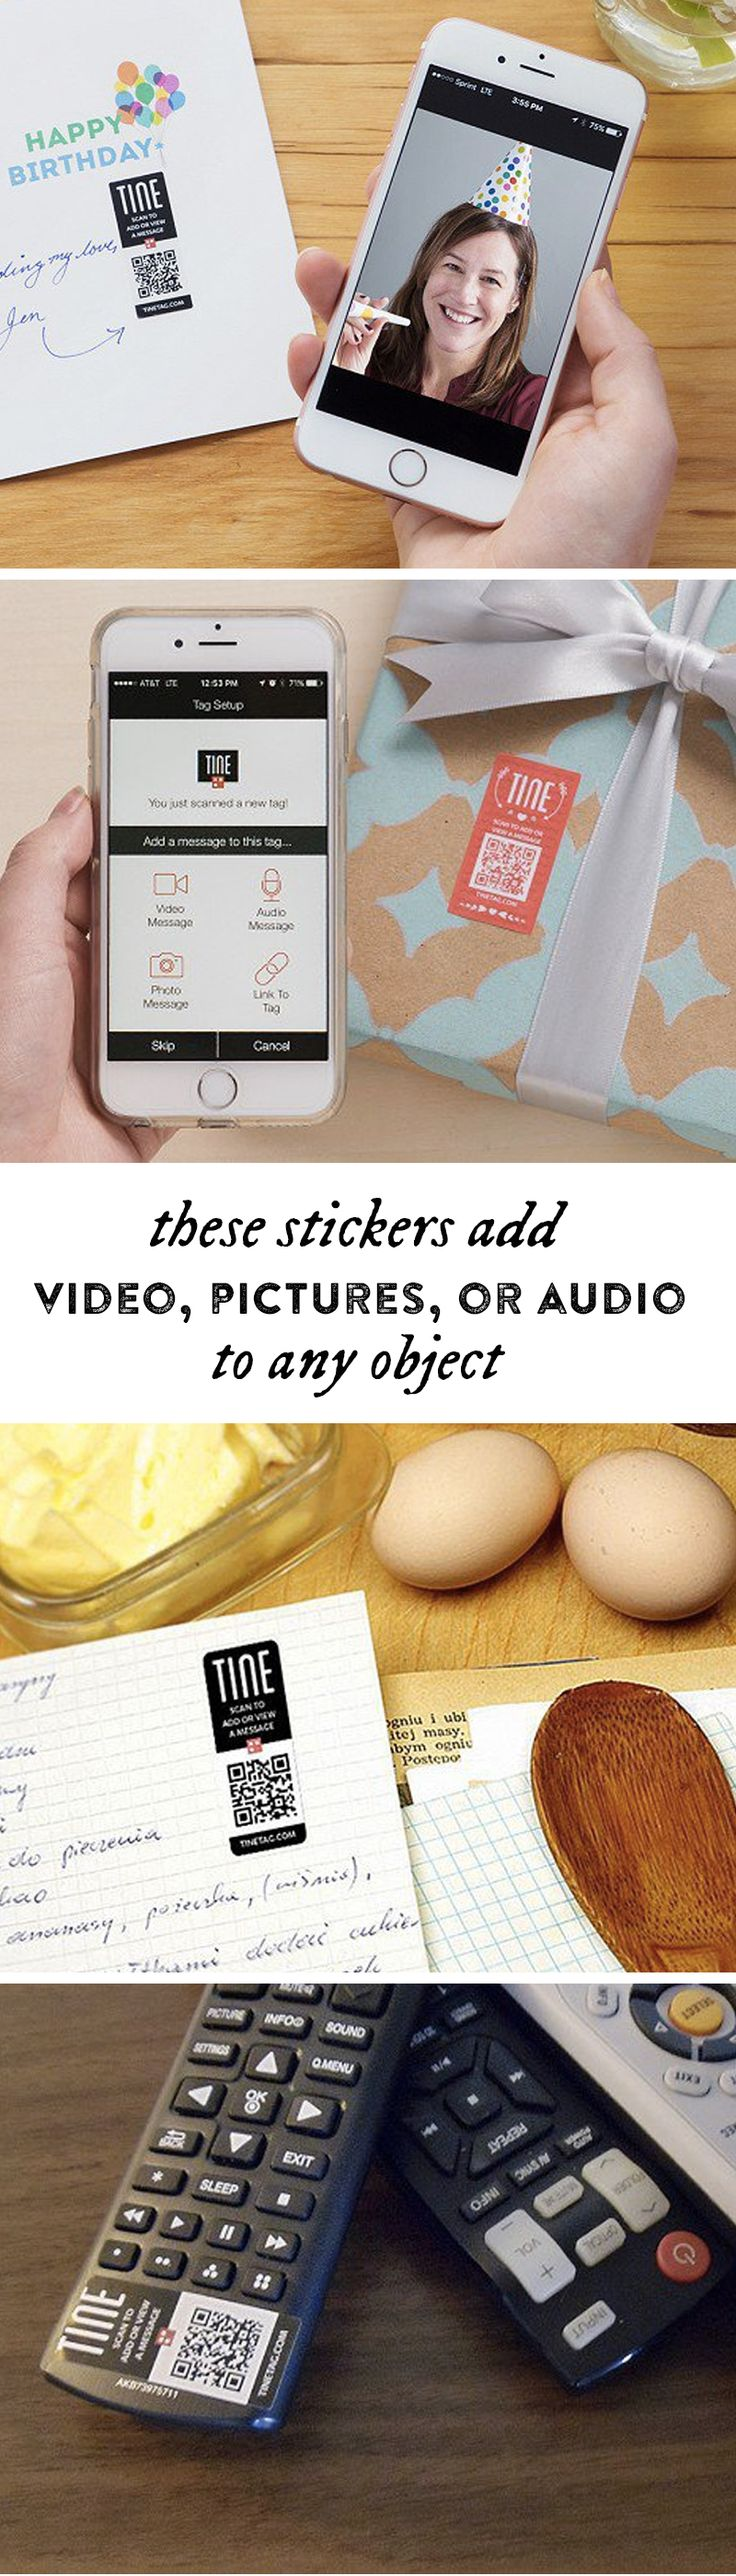 Add video, pictures, or audio to any object. These stickers can personalize gifts, tell guests how to use the remote, or give shoppers more info at your business.